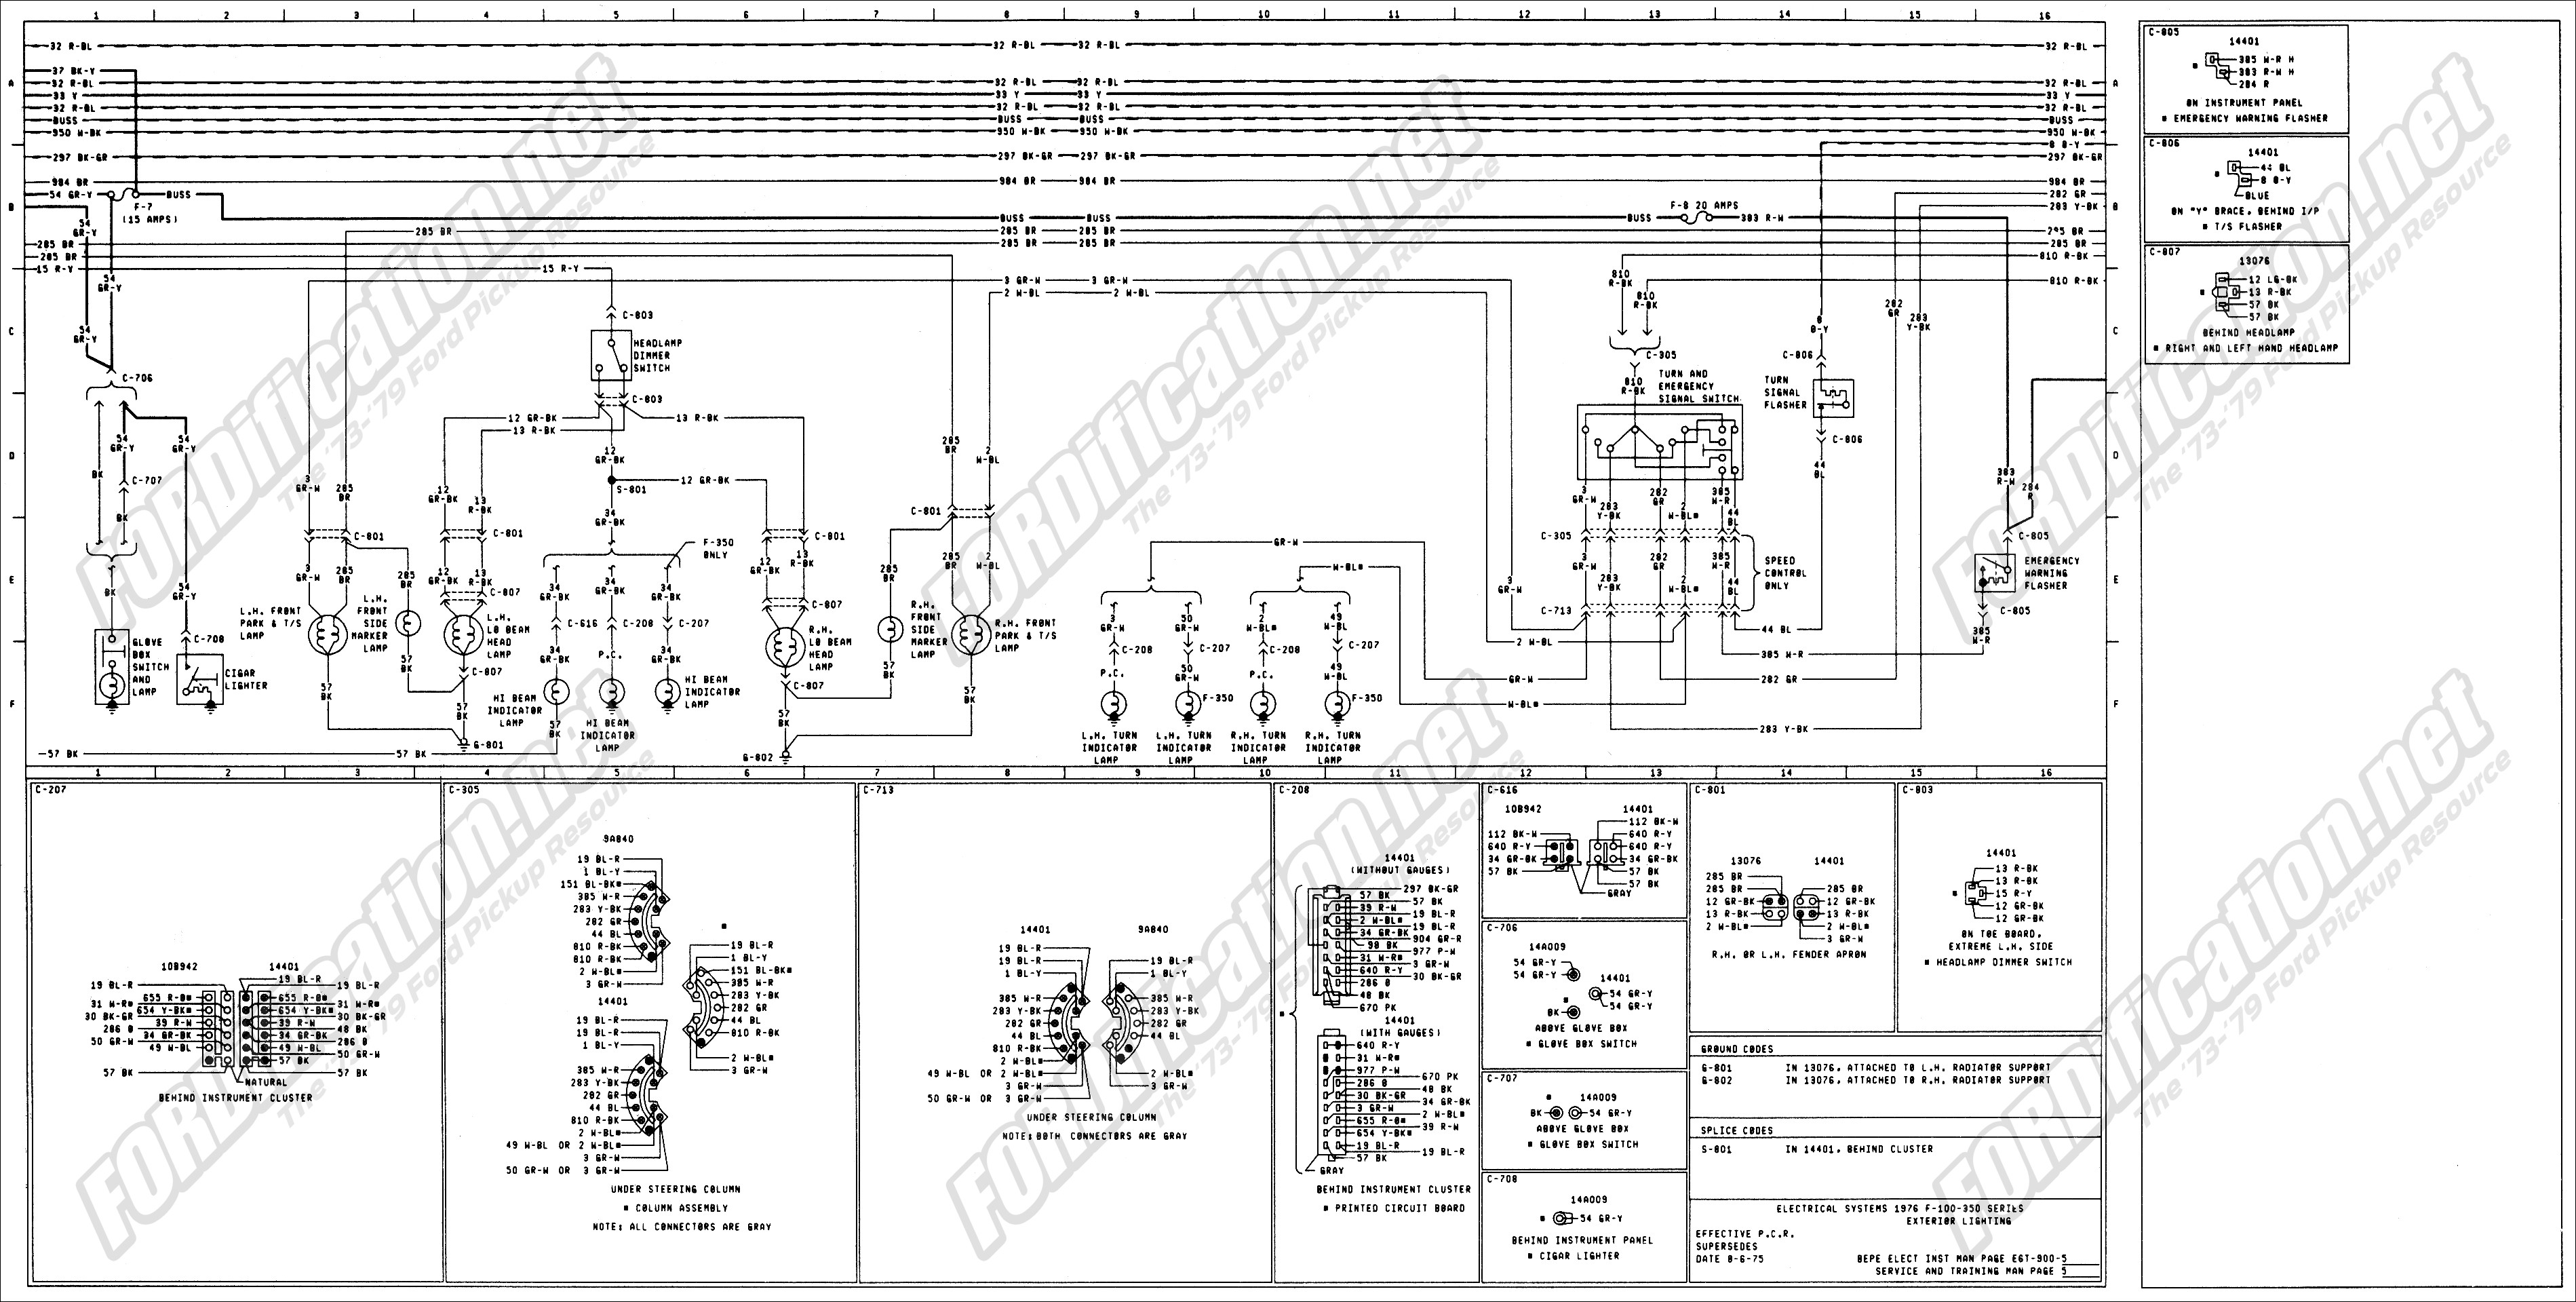 Ford torino tail light wiring diagram wire center tail light wiring diagram ford f150 77 ford f250 wiring diagram rh detoxicrecenze com 1964 mustang tail light wiring diagram 2005 ford f 350 tail light publicscrutiny Choice Image